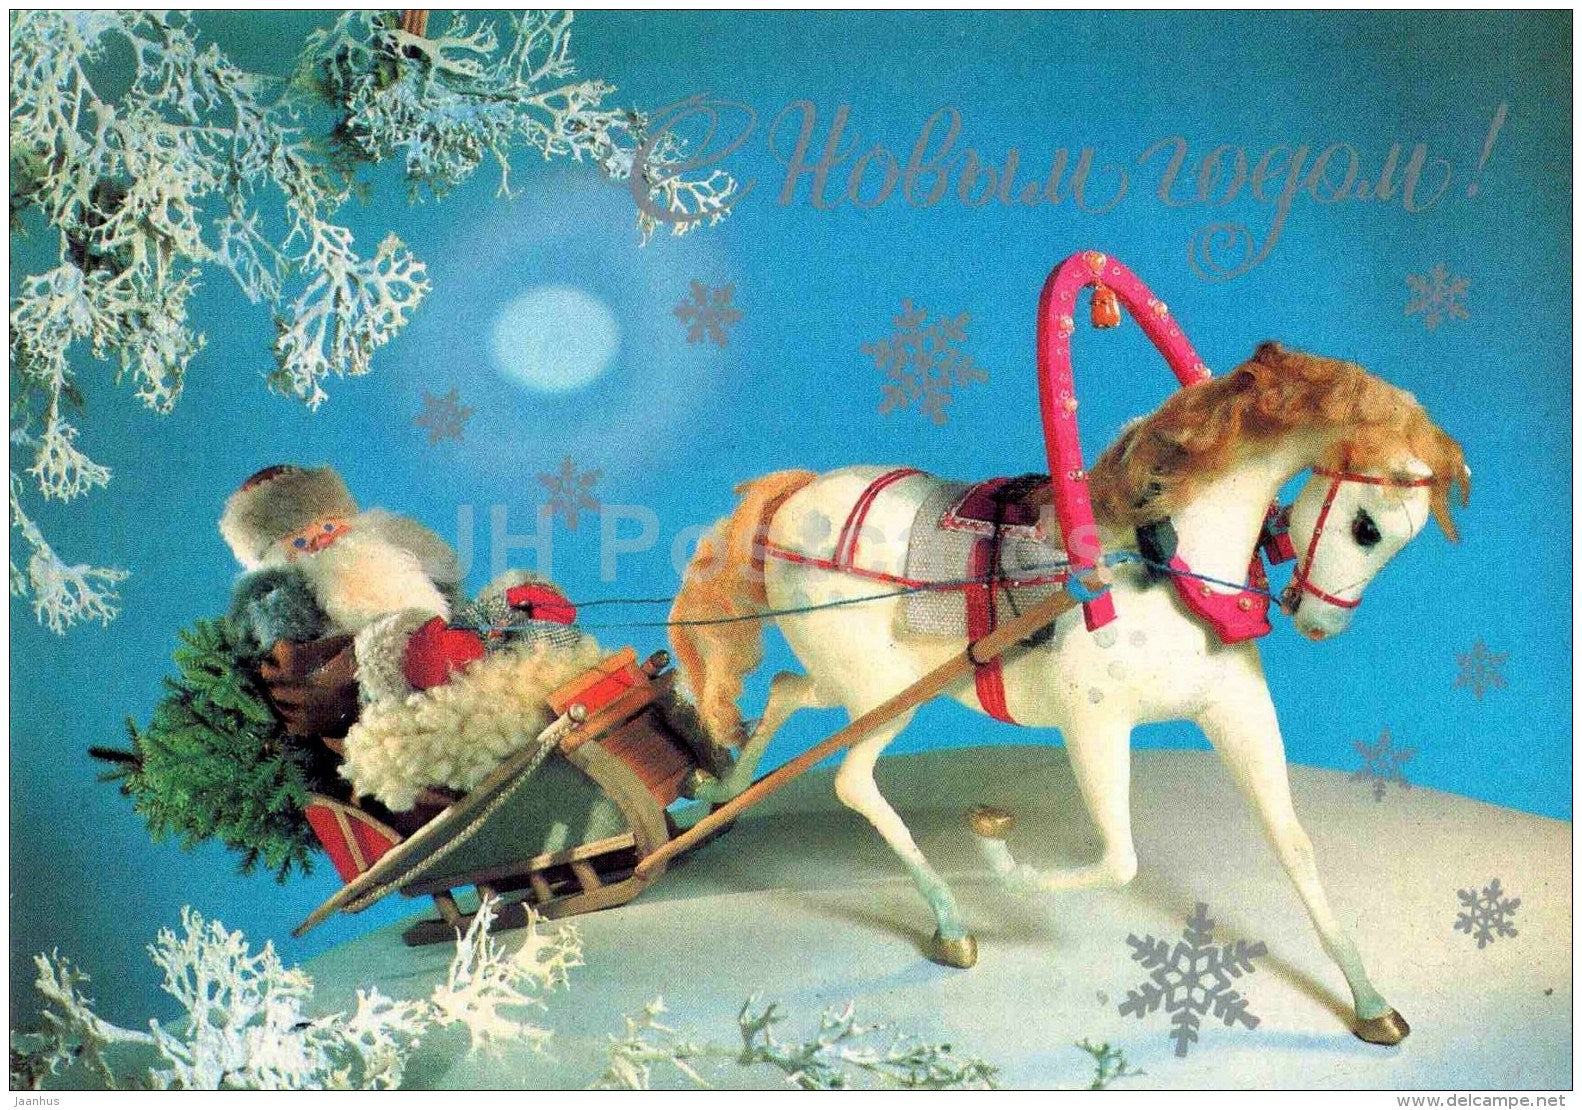 New Year Greeting Card - horse sledge - Ded Moroz - Santa Claus - AVIA - postal stationery - 1982 - Russia USSR - used - JH Postcards